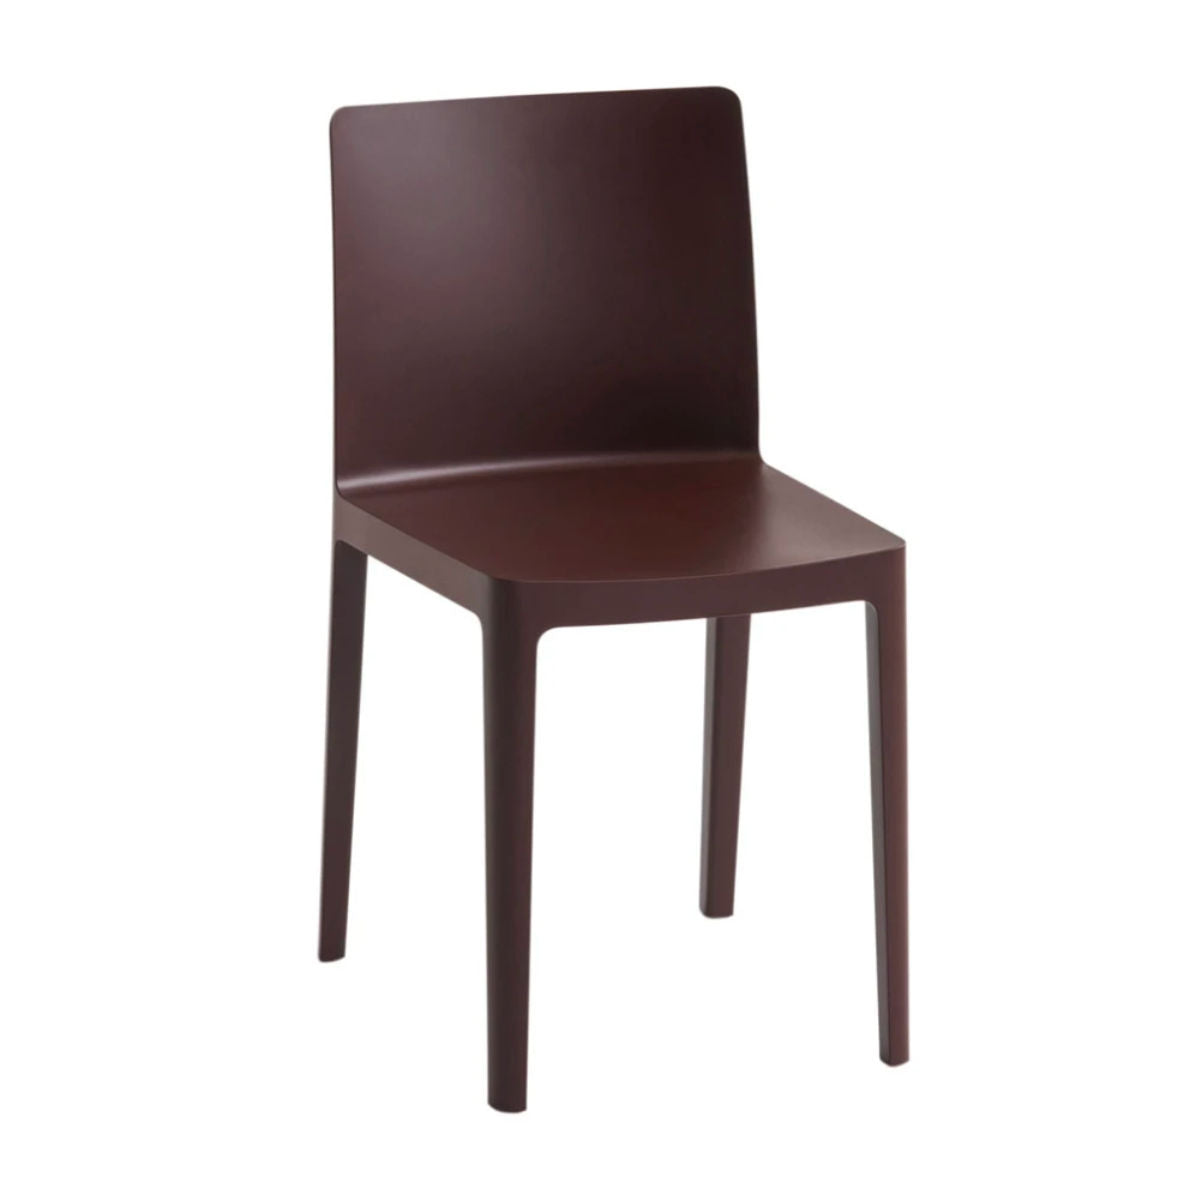 HAY Elementaire Chair, chocolate brown